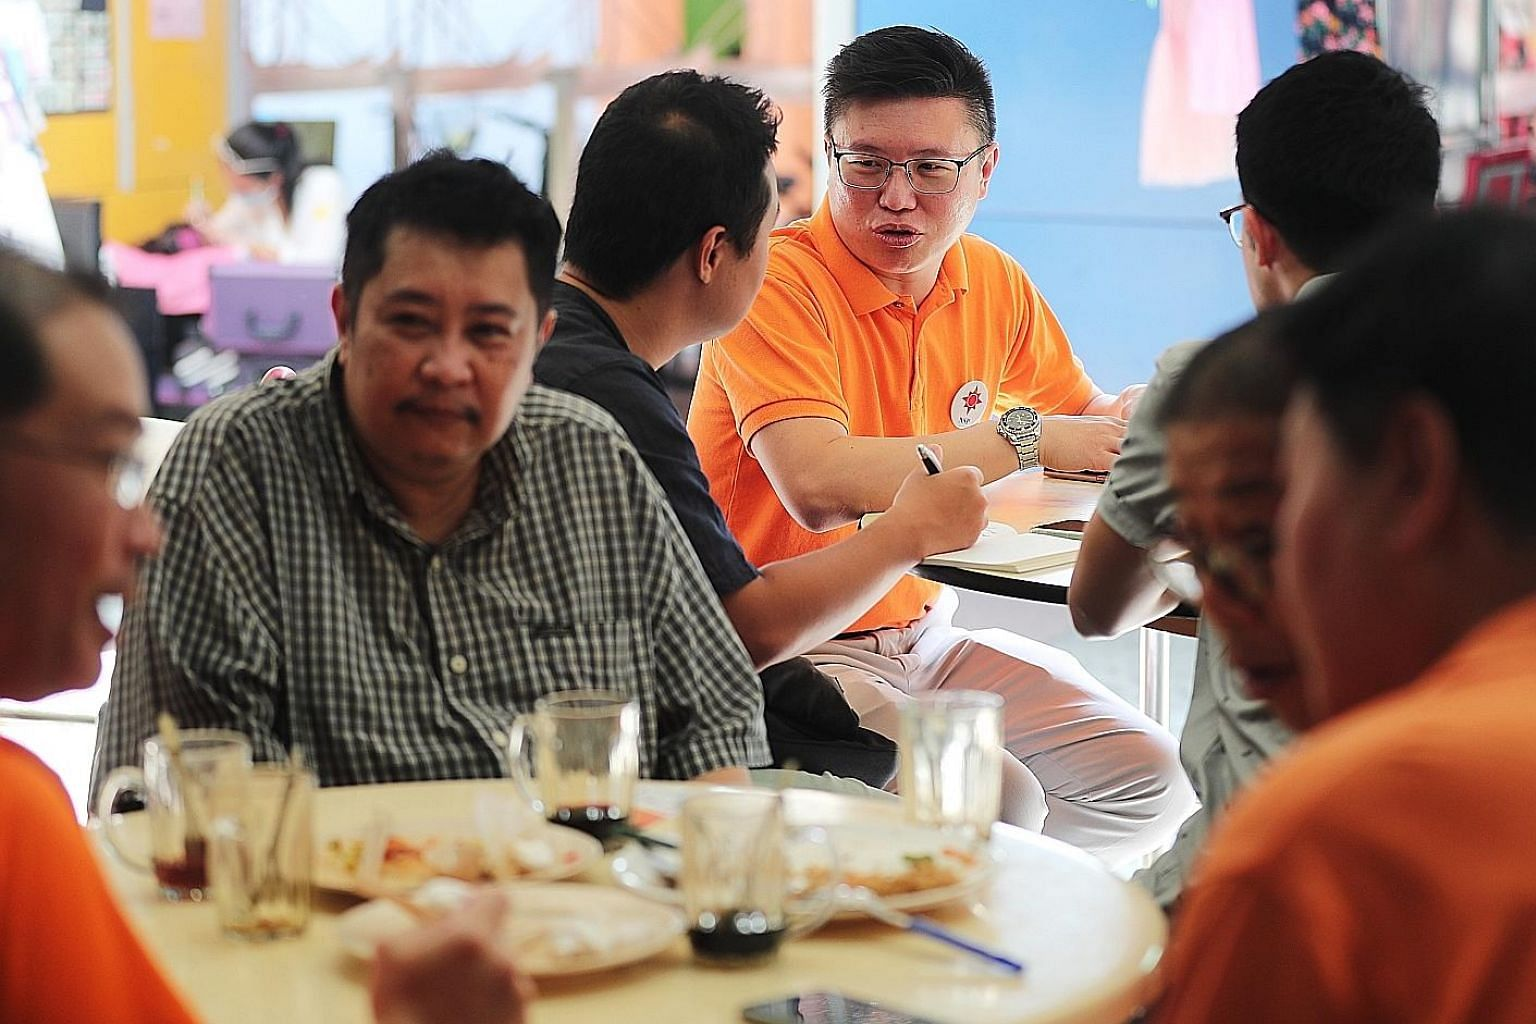 National Solidarity Party secretary-general Spencer Ng (centre), meeting the media in Tampines yesterday. He said his party will contest Tampines GRC, Sembawang GRC as well as Pioneer and MacPherson SMCs.